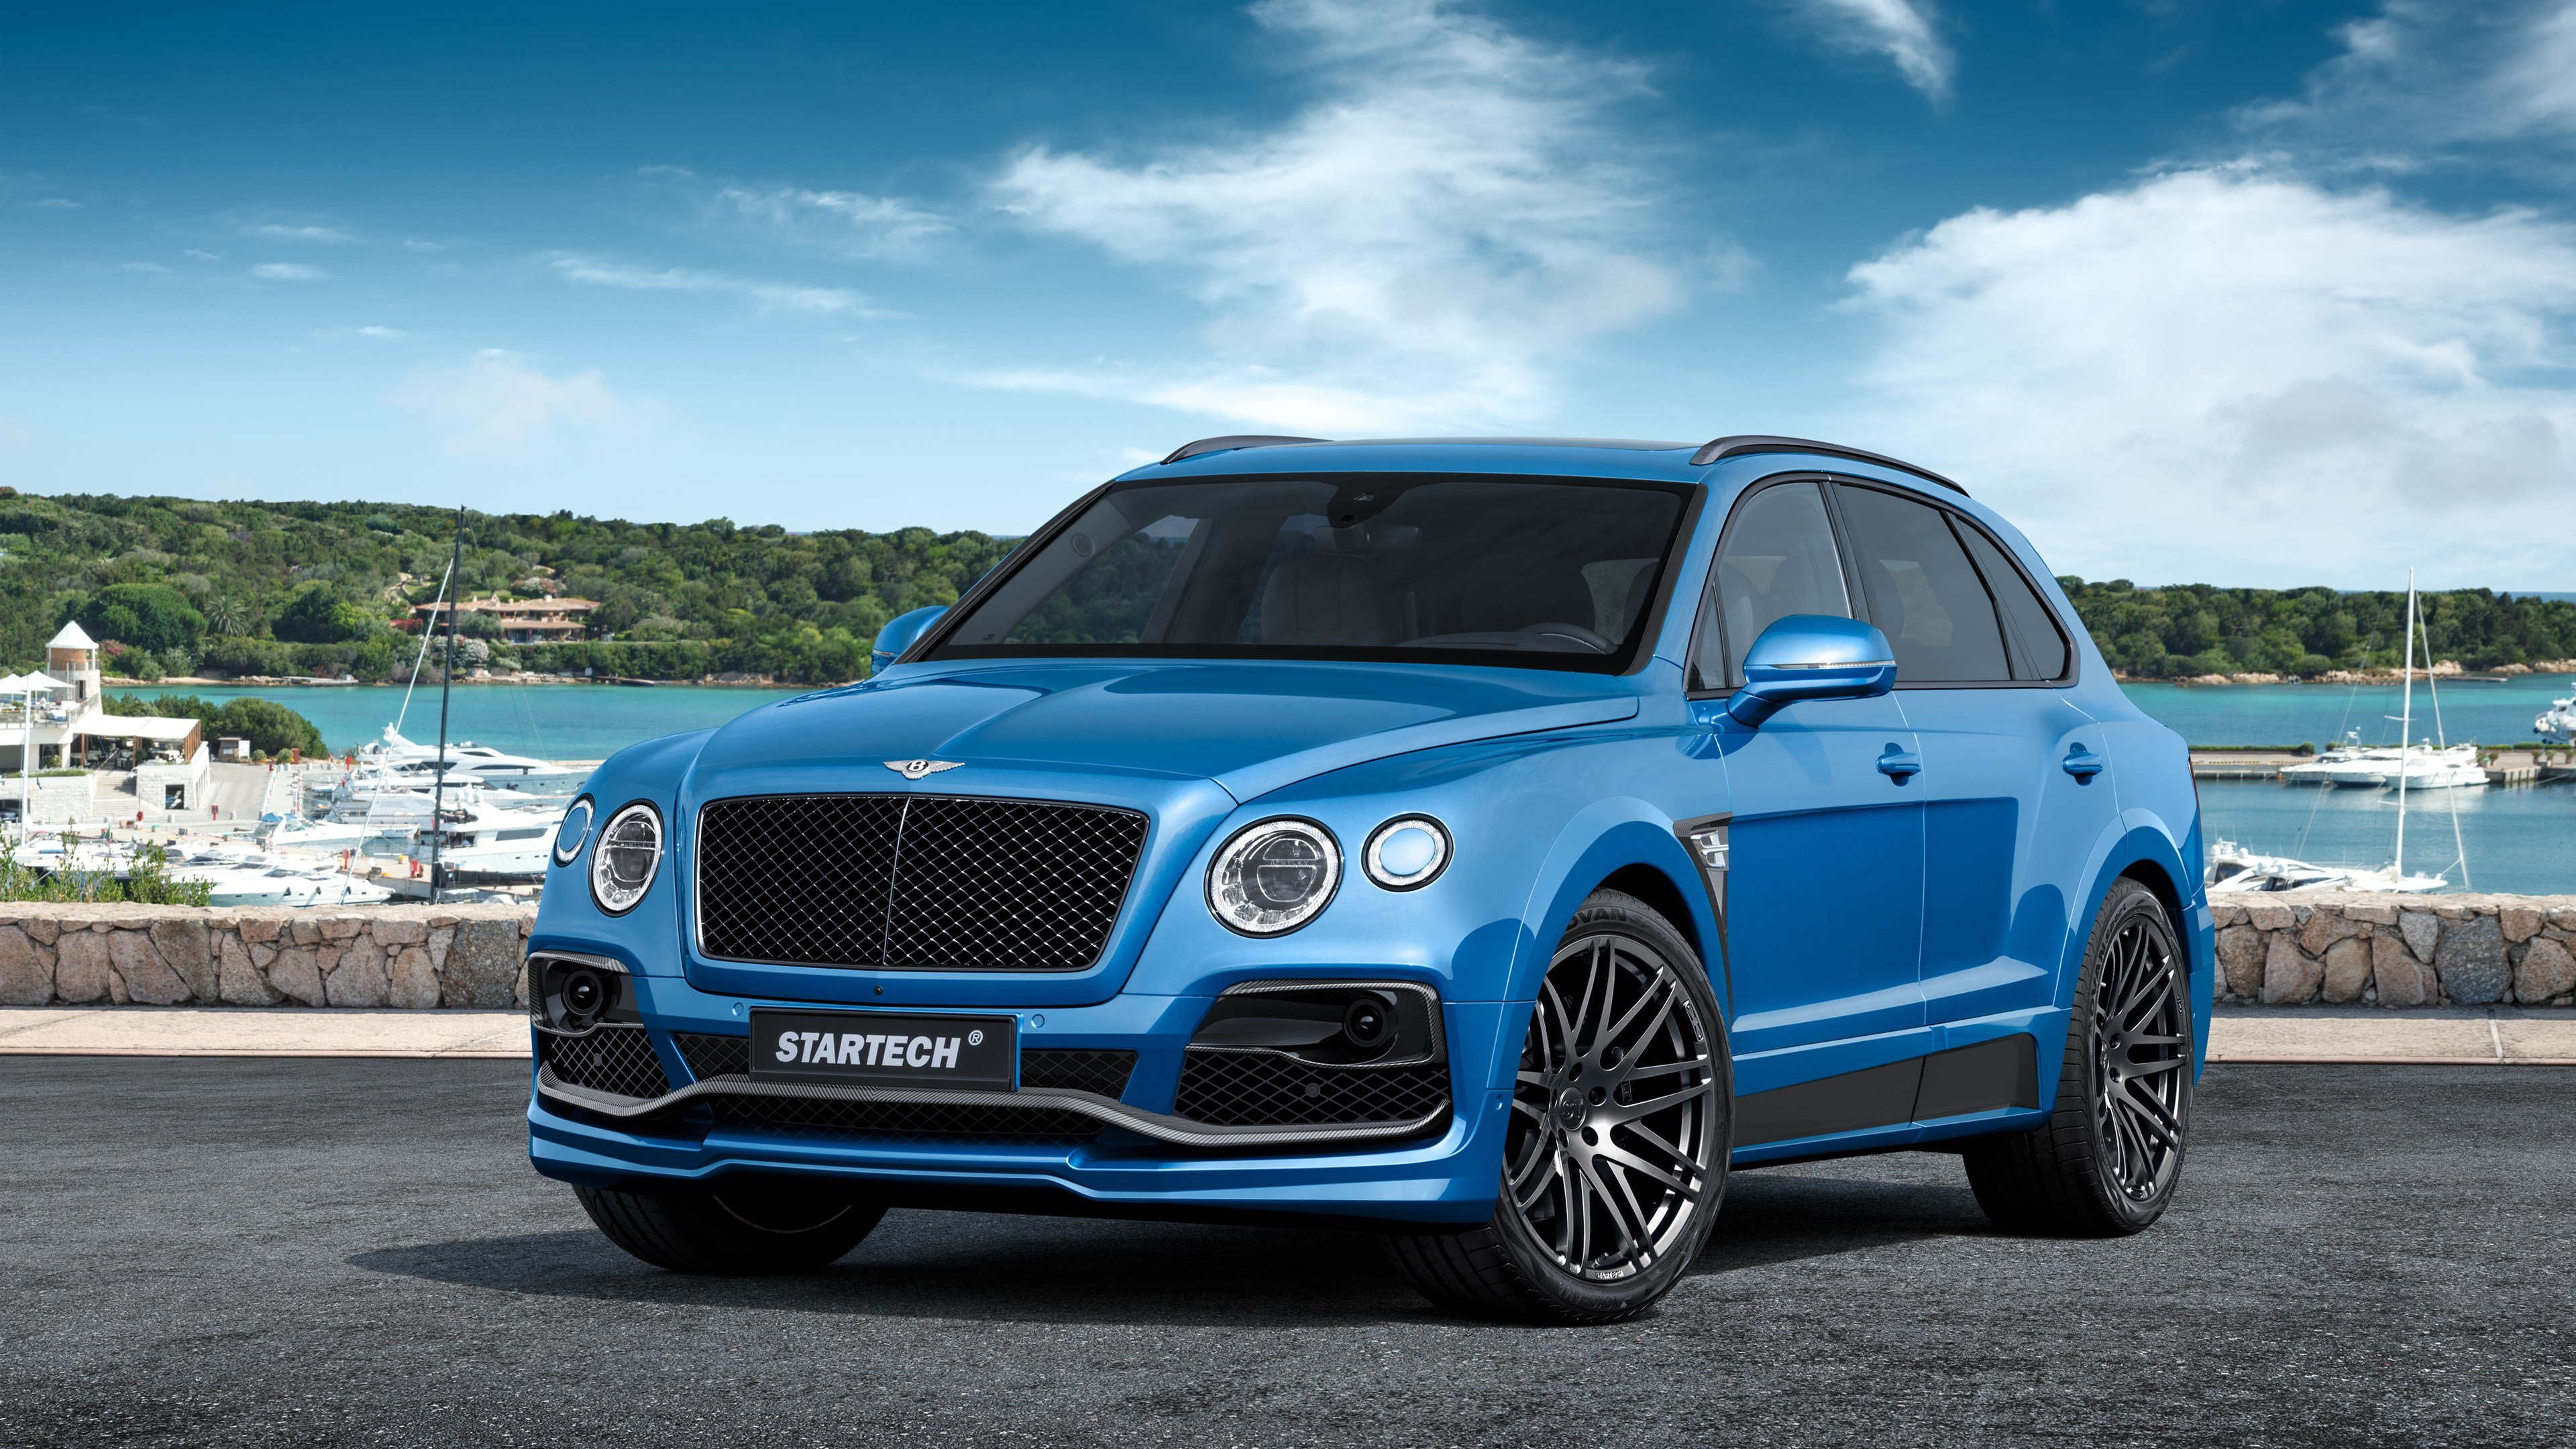 Latest Bentley Bentayga By Startech Wallpaper Hd Car Wallpapers Free Download